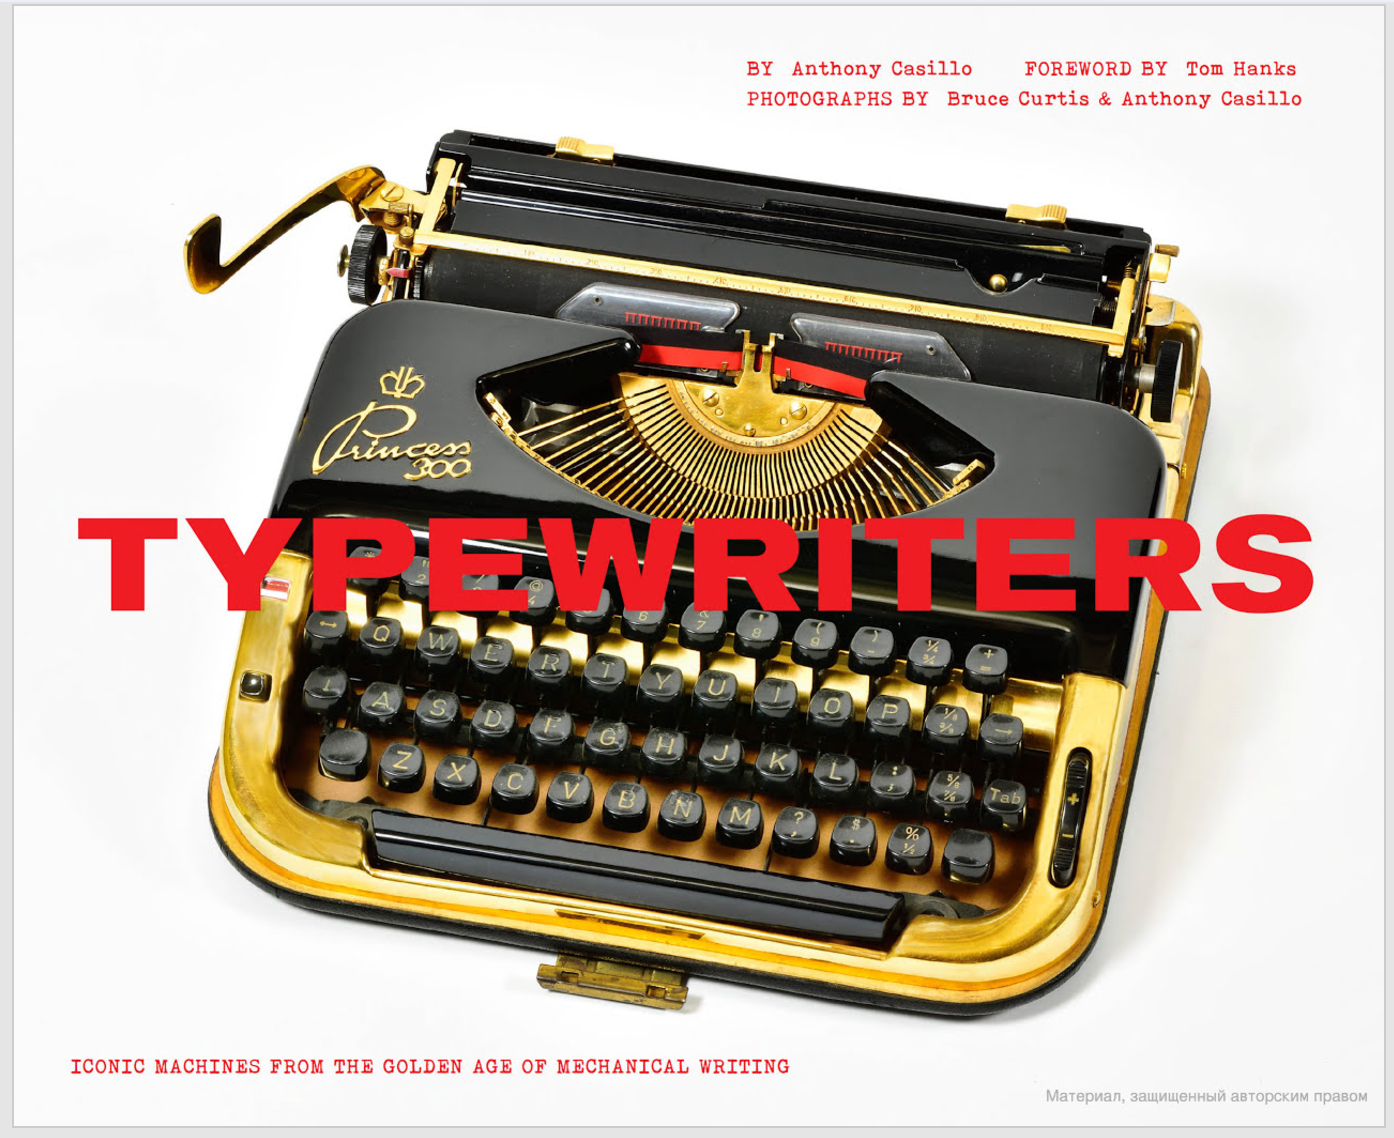 Anthony Casillo, Bruce Curtis. Typewriters: Iconic Machines from the Golden Age